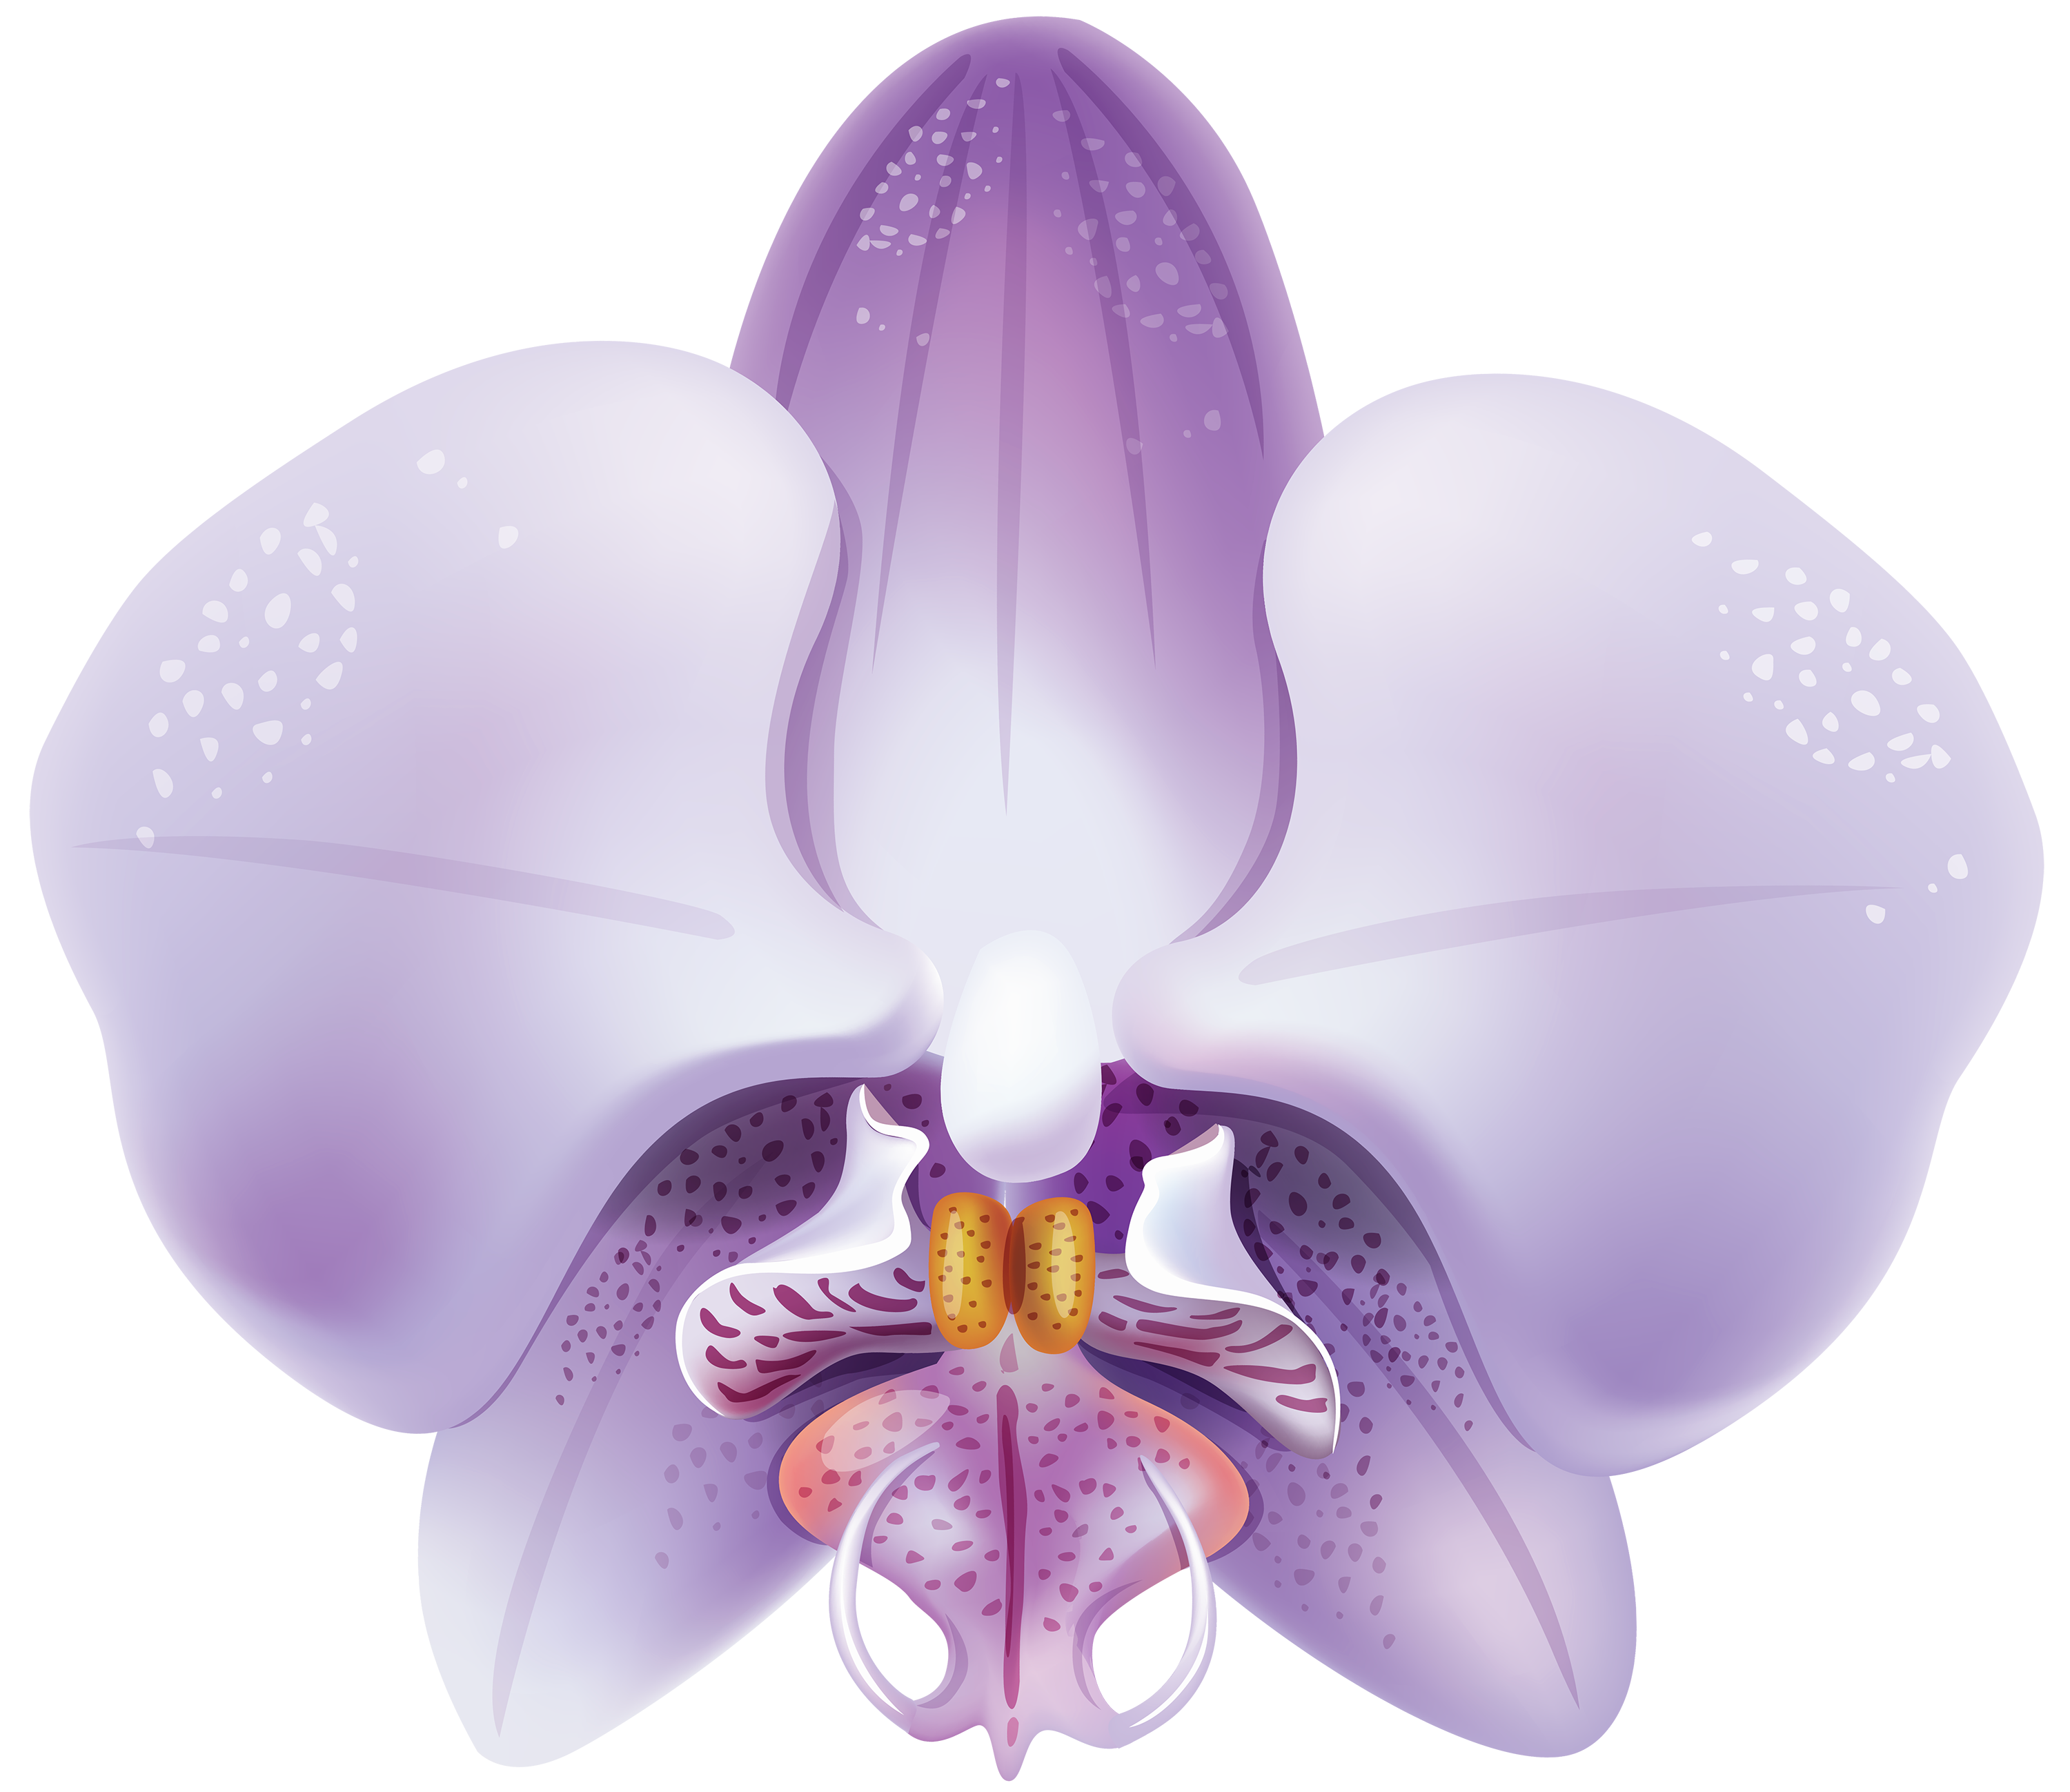 Orchid transparent high resolution. Violet png clipart best